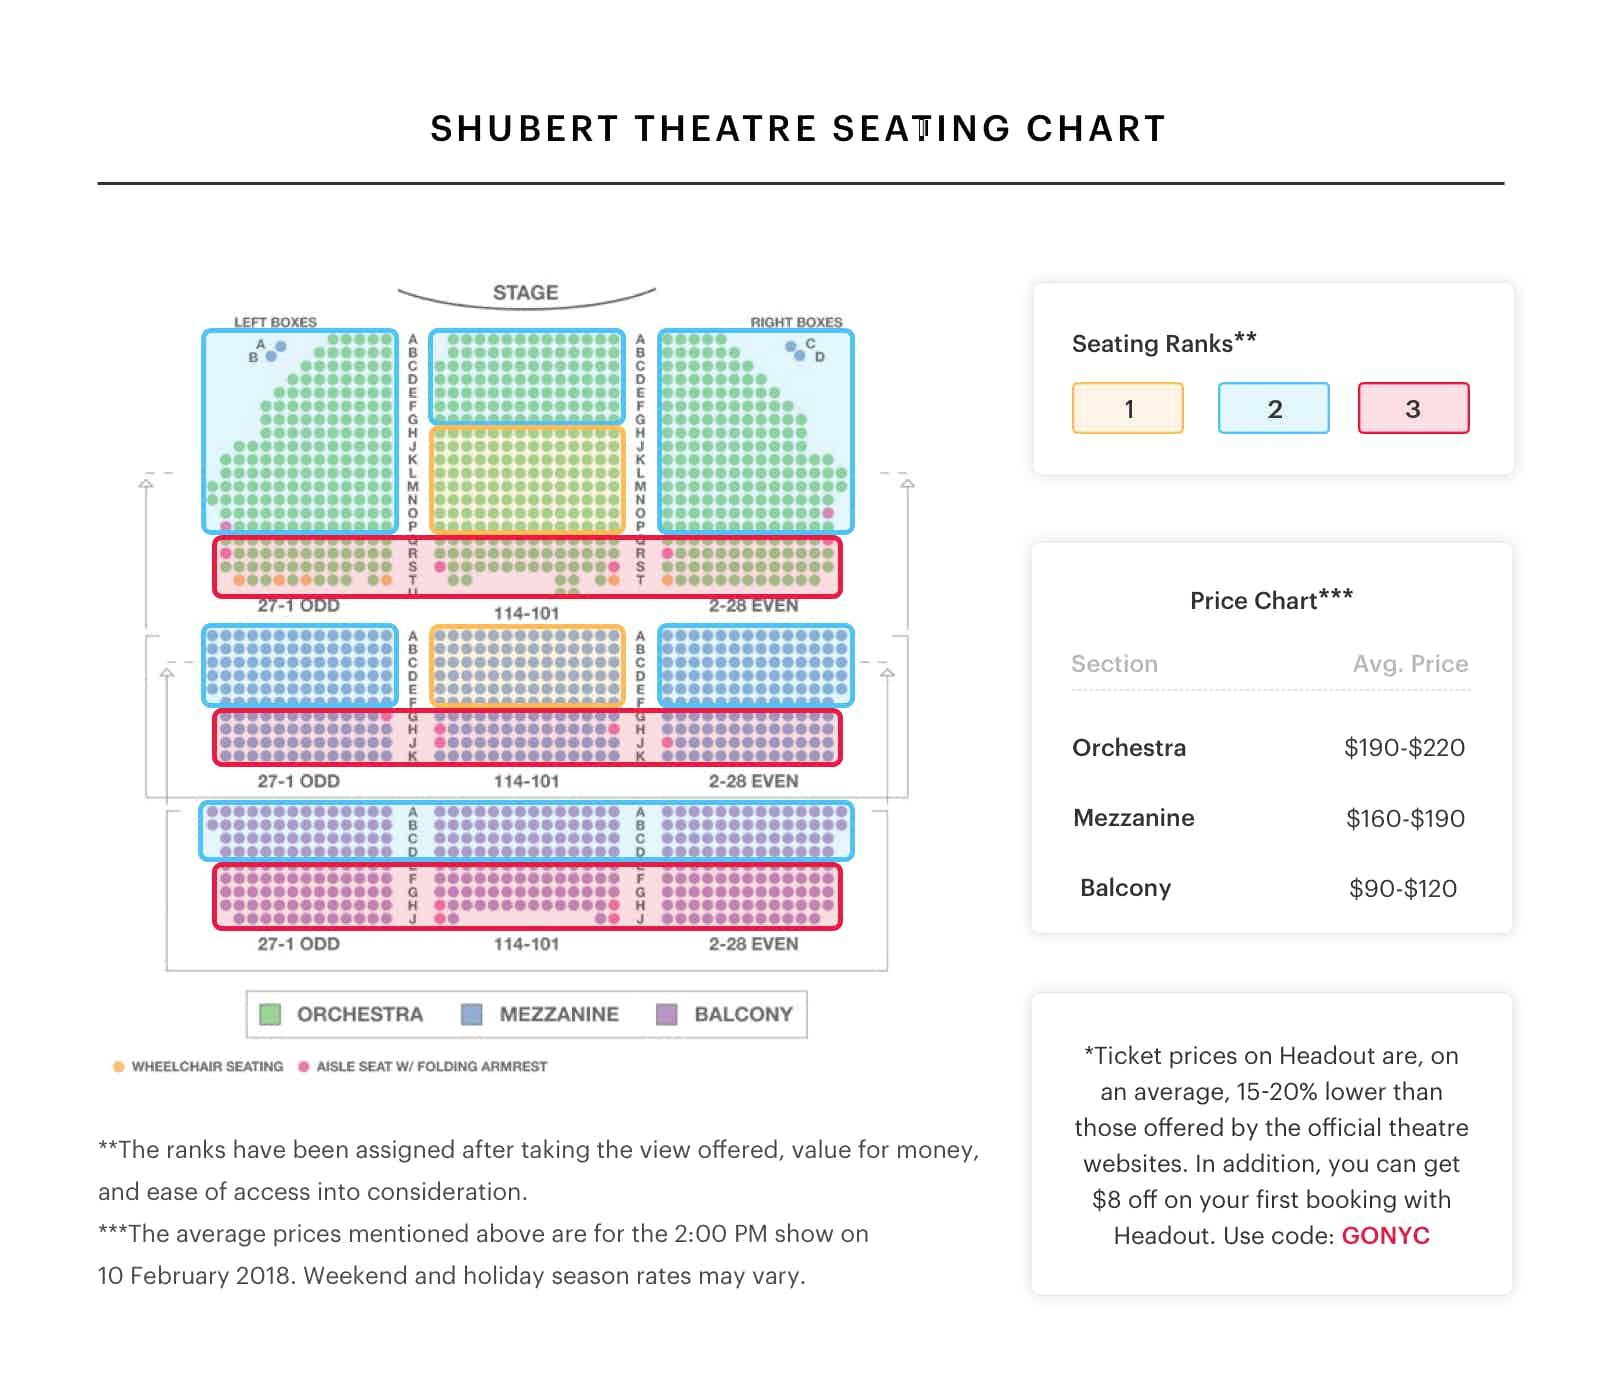 Ambassador Theatre Seating Chart Chicago Tickets Reviews And More Theater Seating Seating Charts Chart